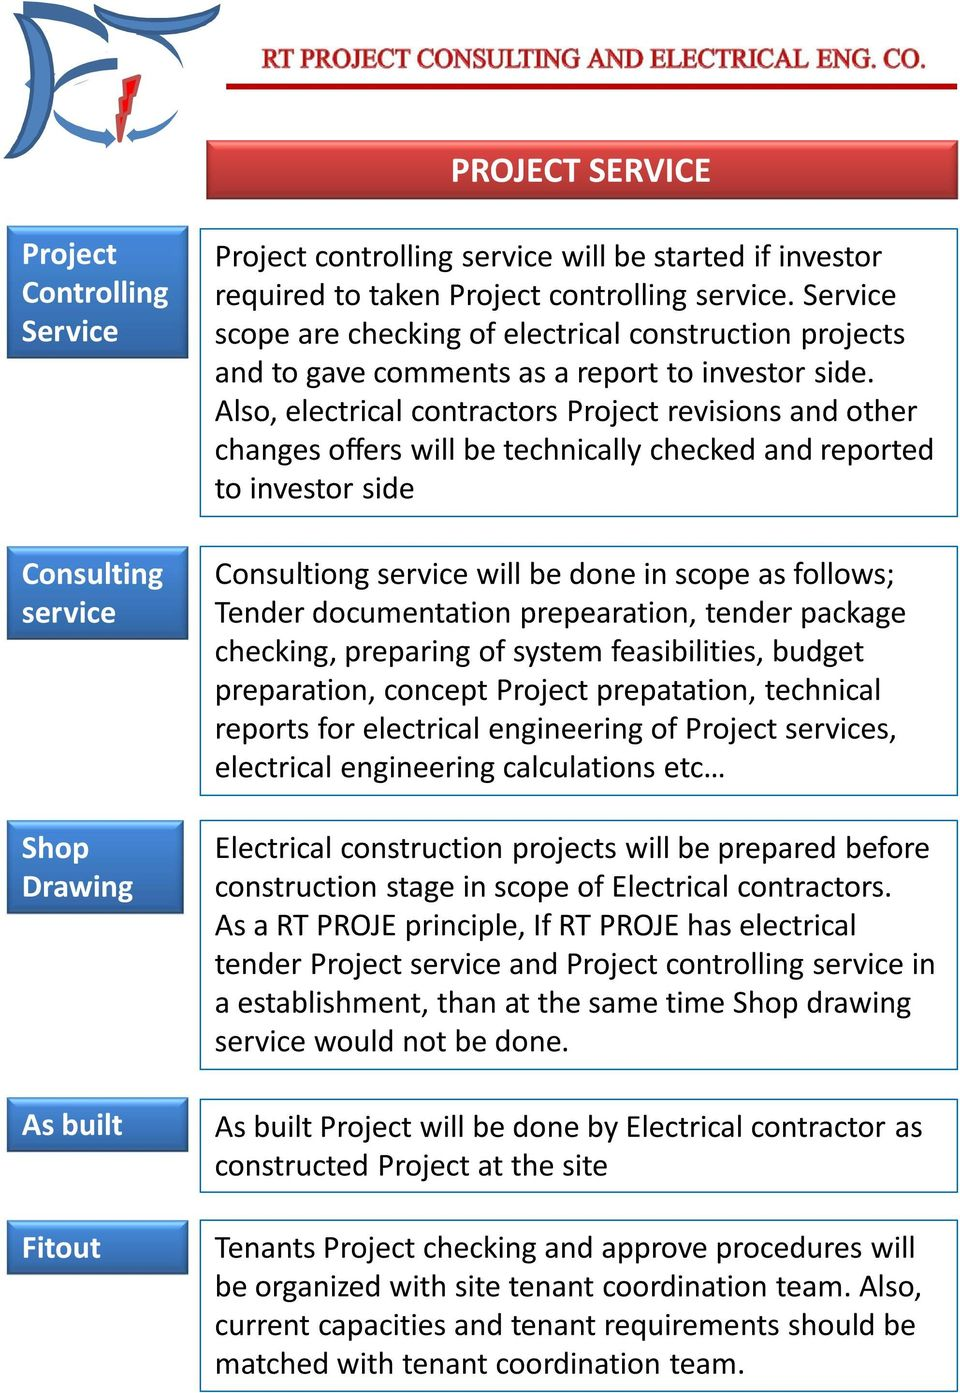 Also, electrical contractors Project revisions and other changes offers will be technically checked and reported to investor side Consultiong service will be done in scope as follows; Tender